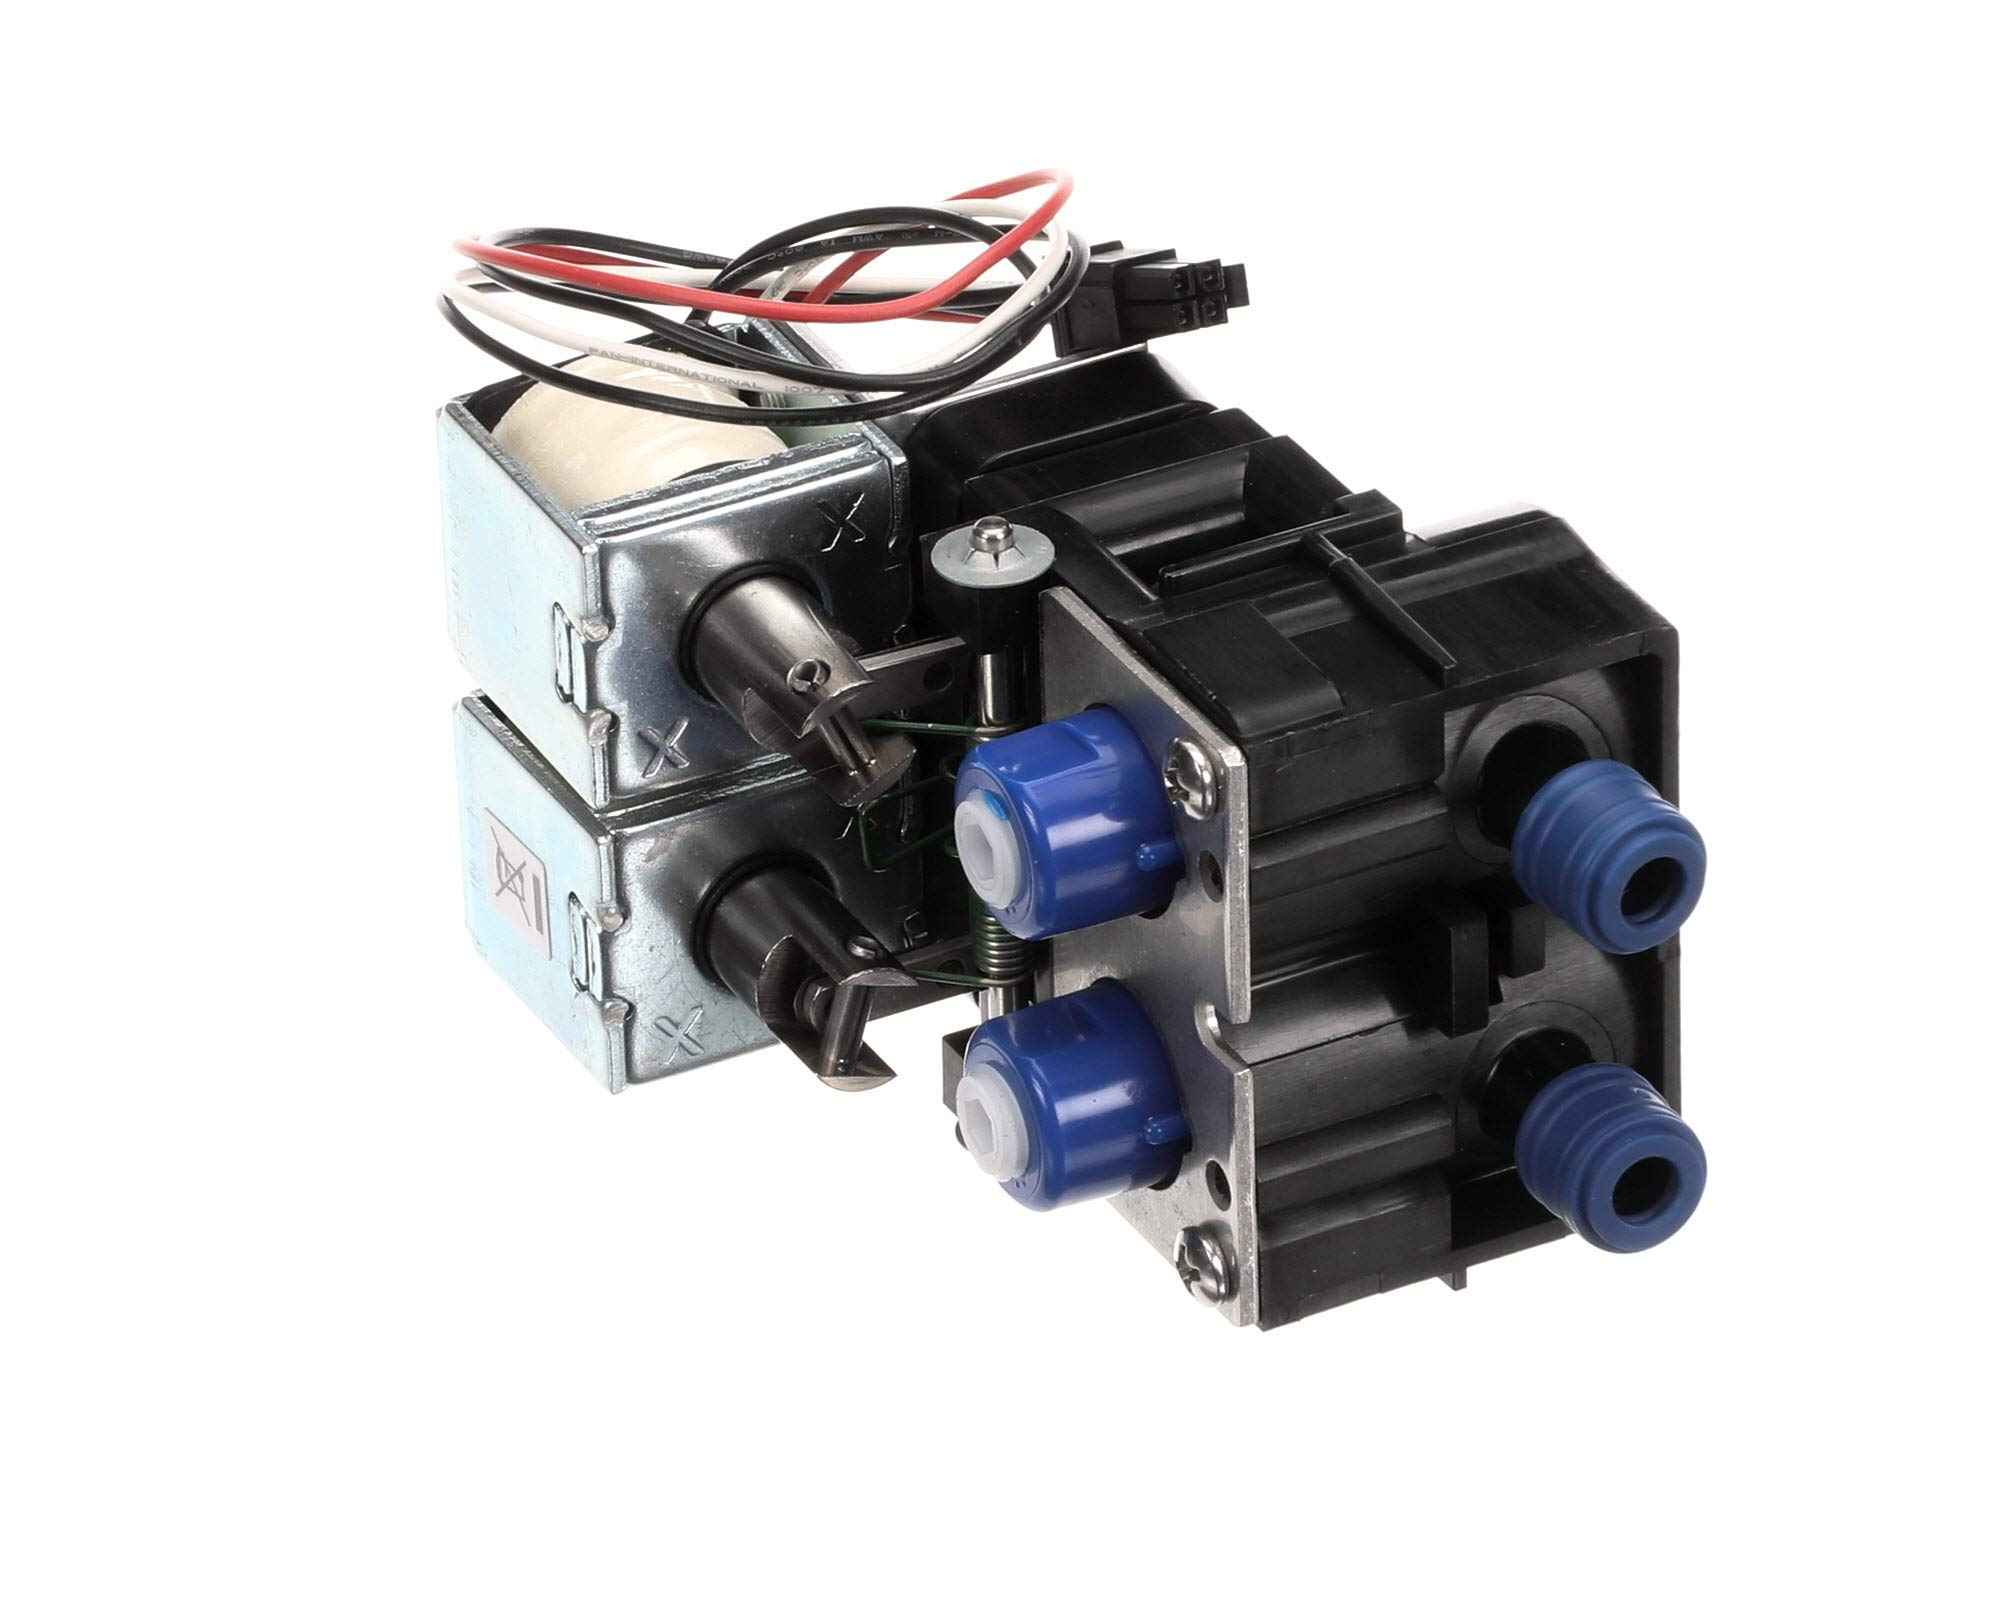 Multiplex 464-CSY-D27-SP Valve Dual Syrup/Syrup with Small by Multiplex Modelsport USA (Image #1)